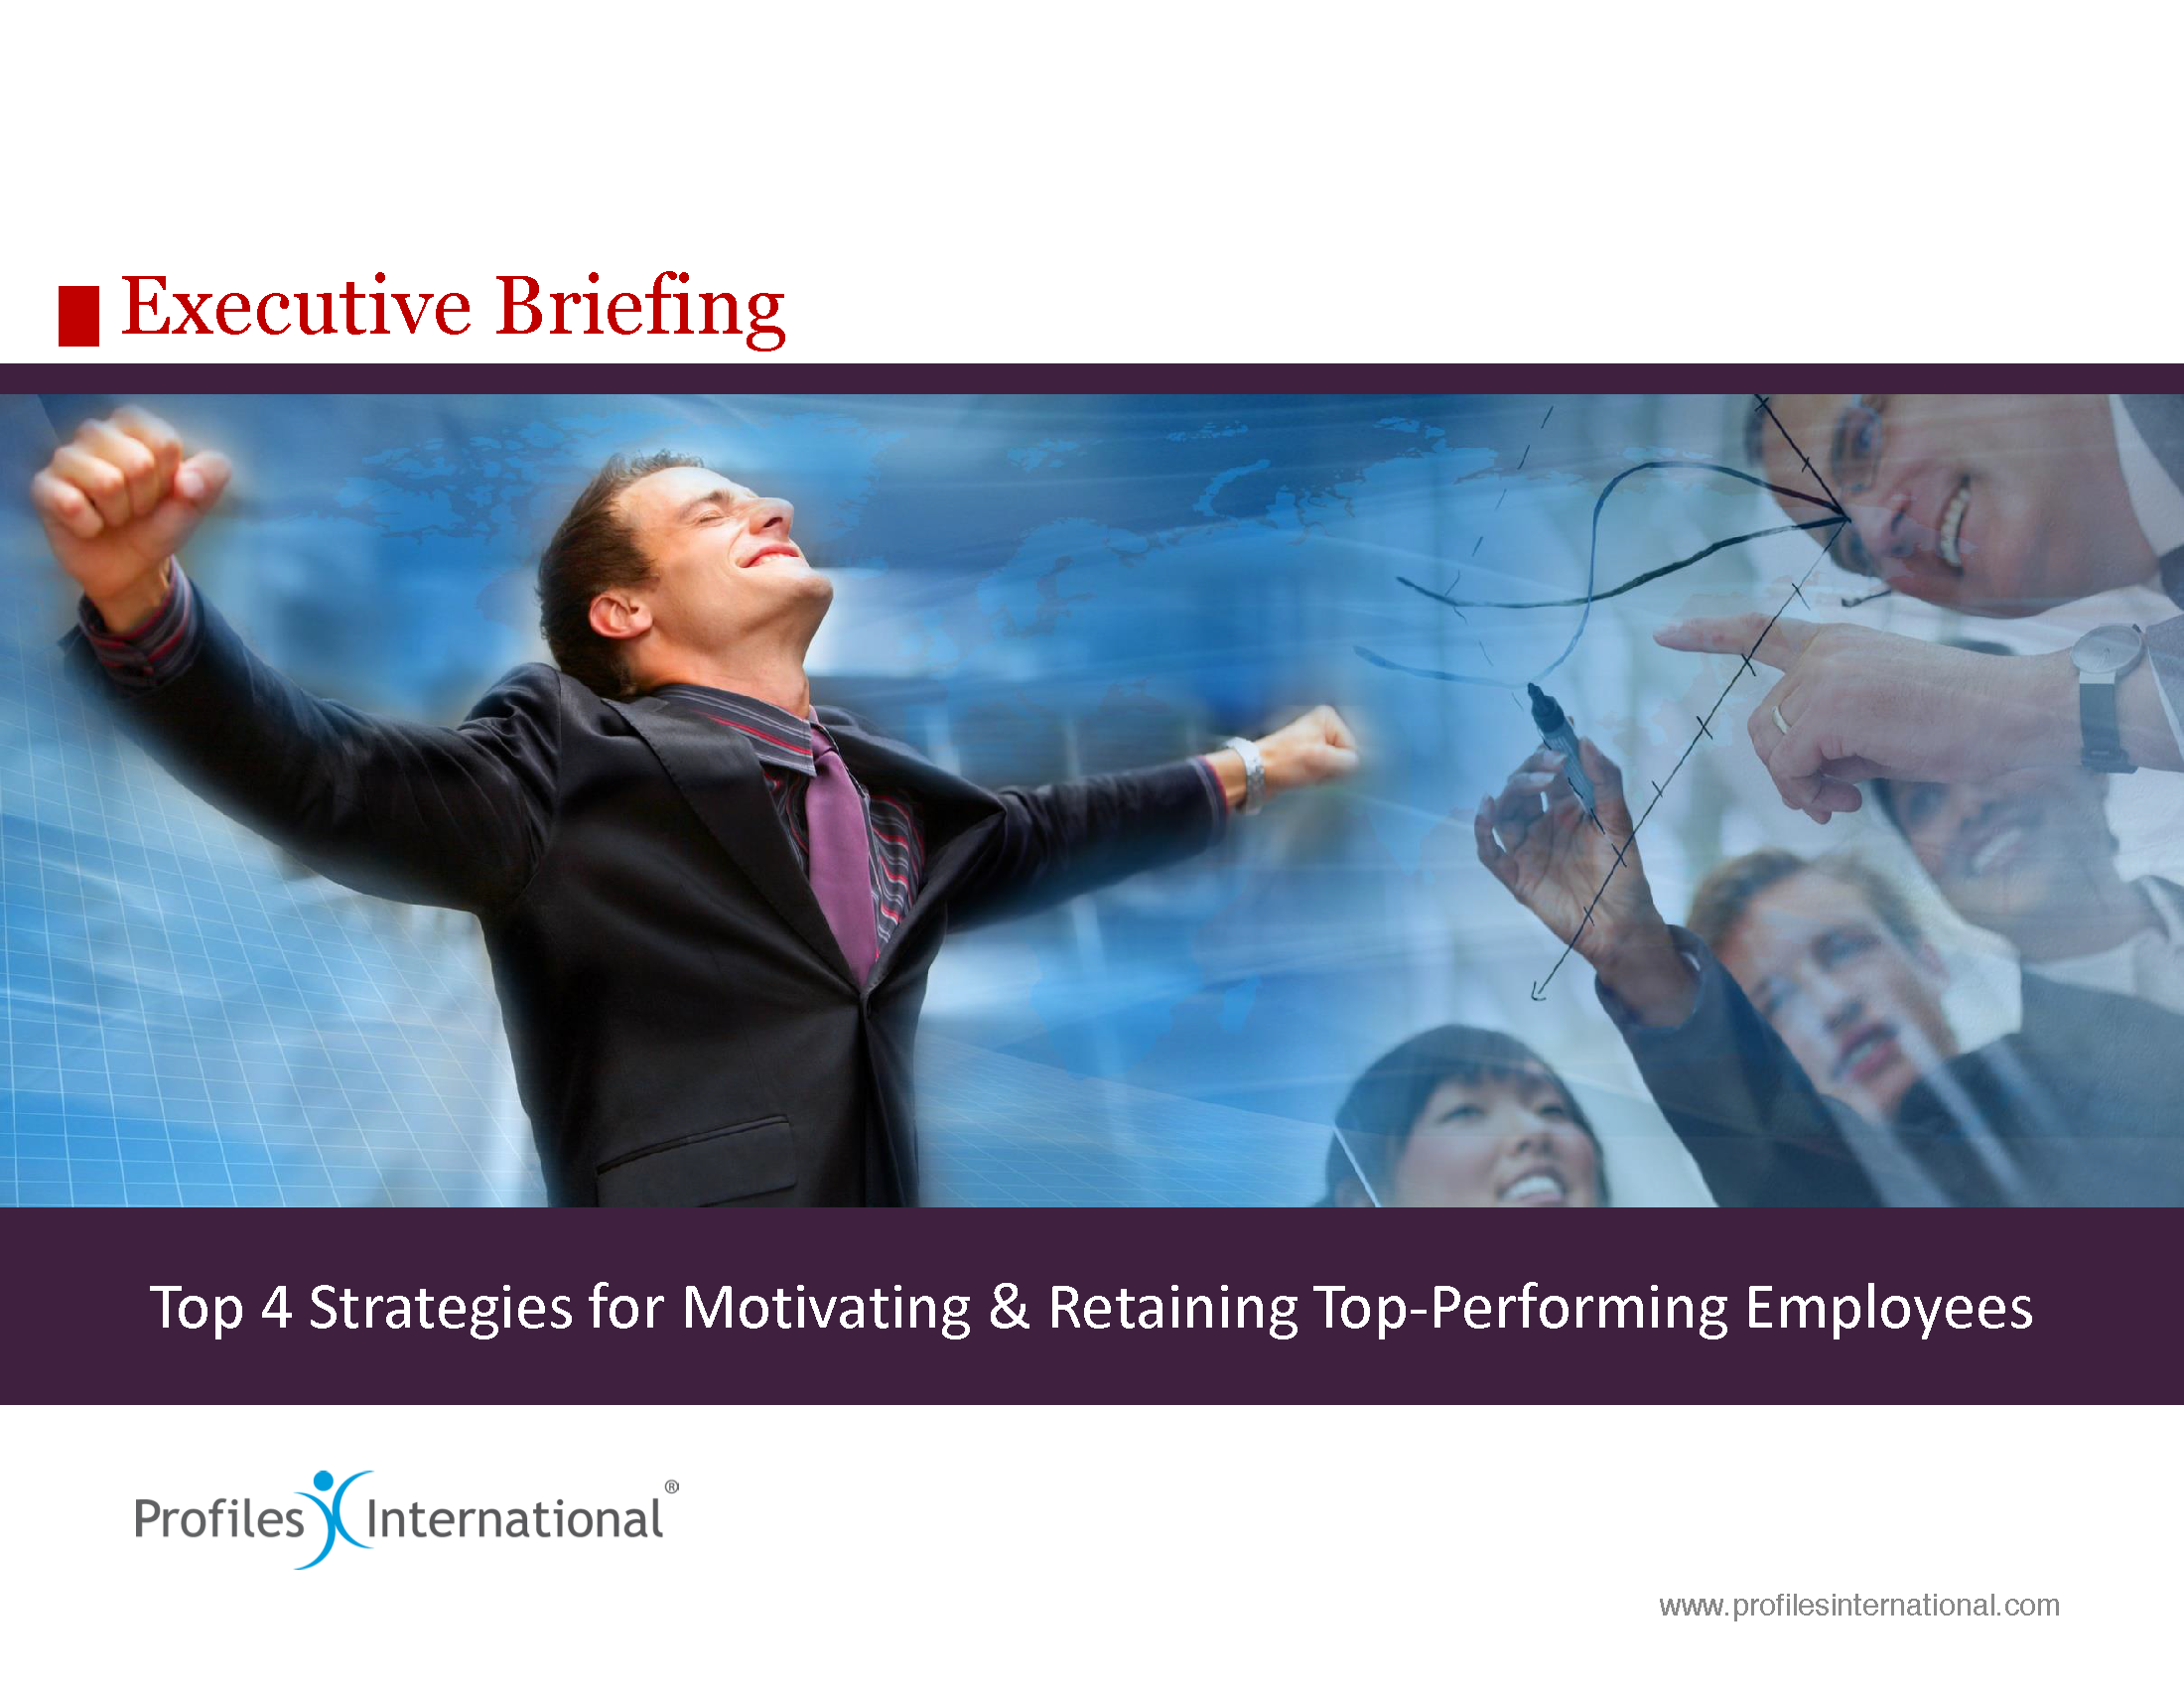 18-Top 4 Strategies for Motivating and Retaining Employees